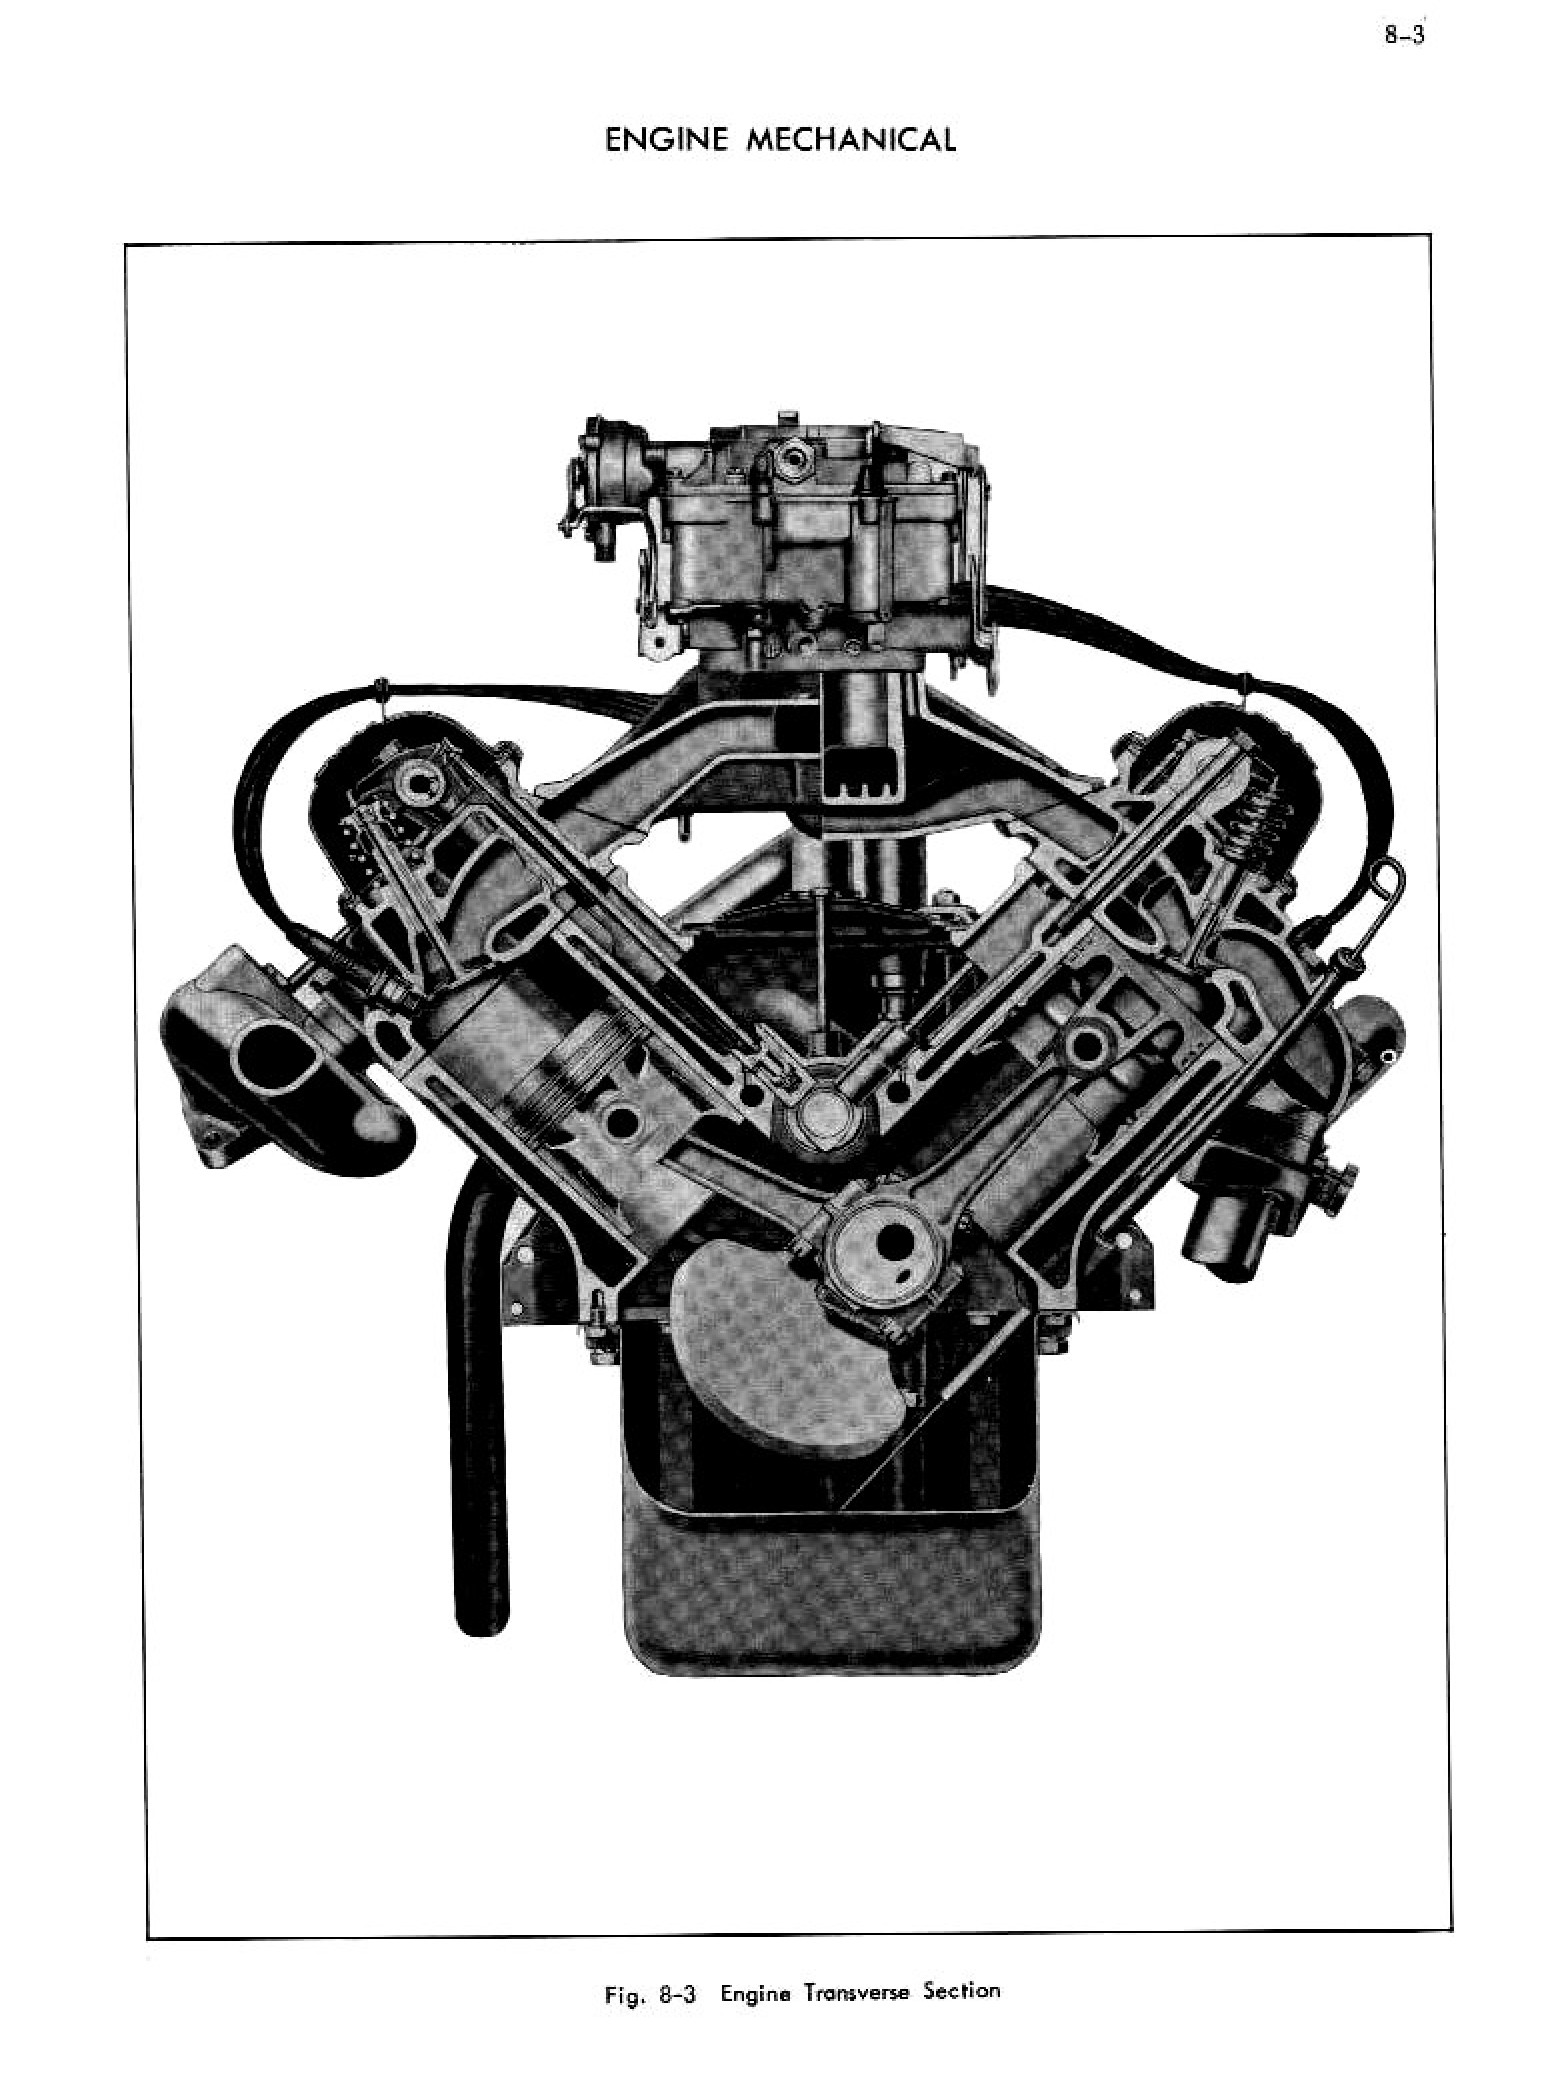 1956 Cadillac Shop Manual- Engine Mechanical Page 3 of 34